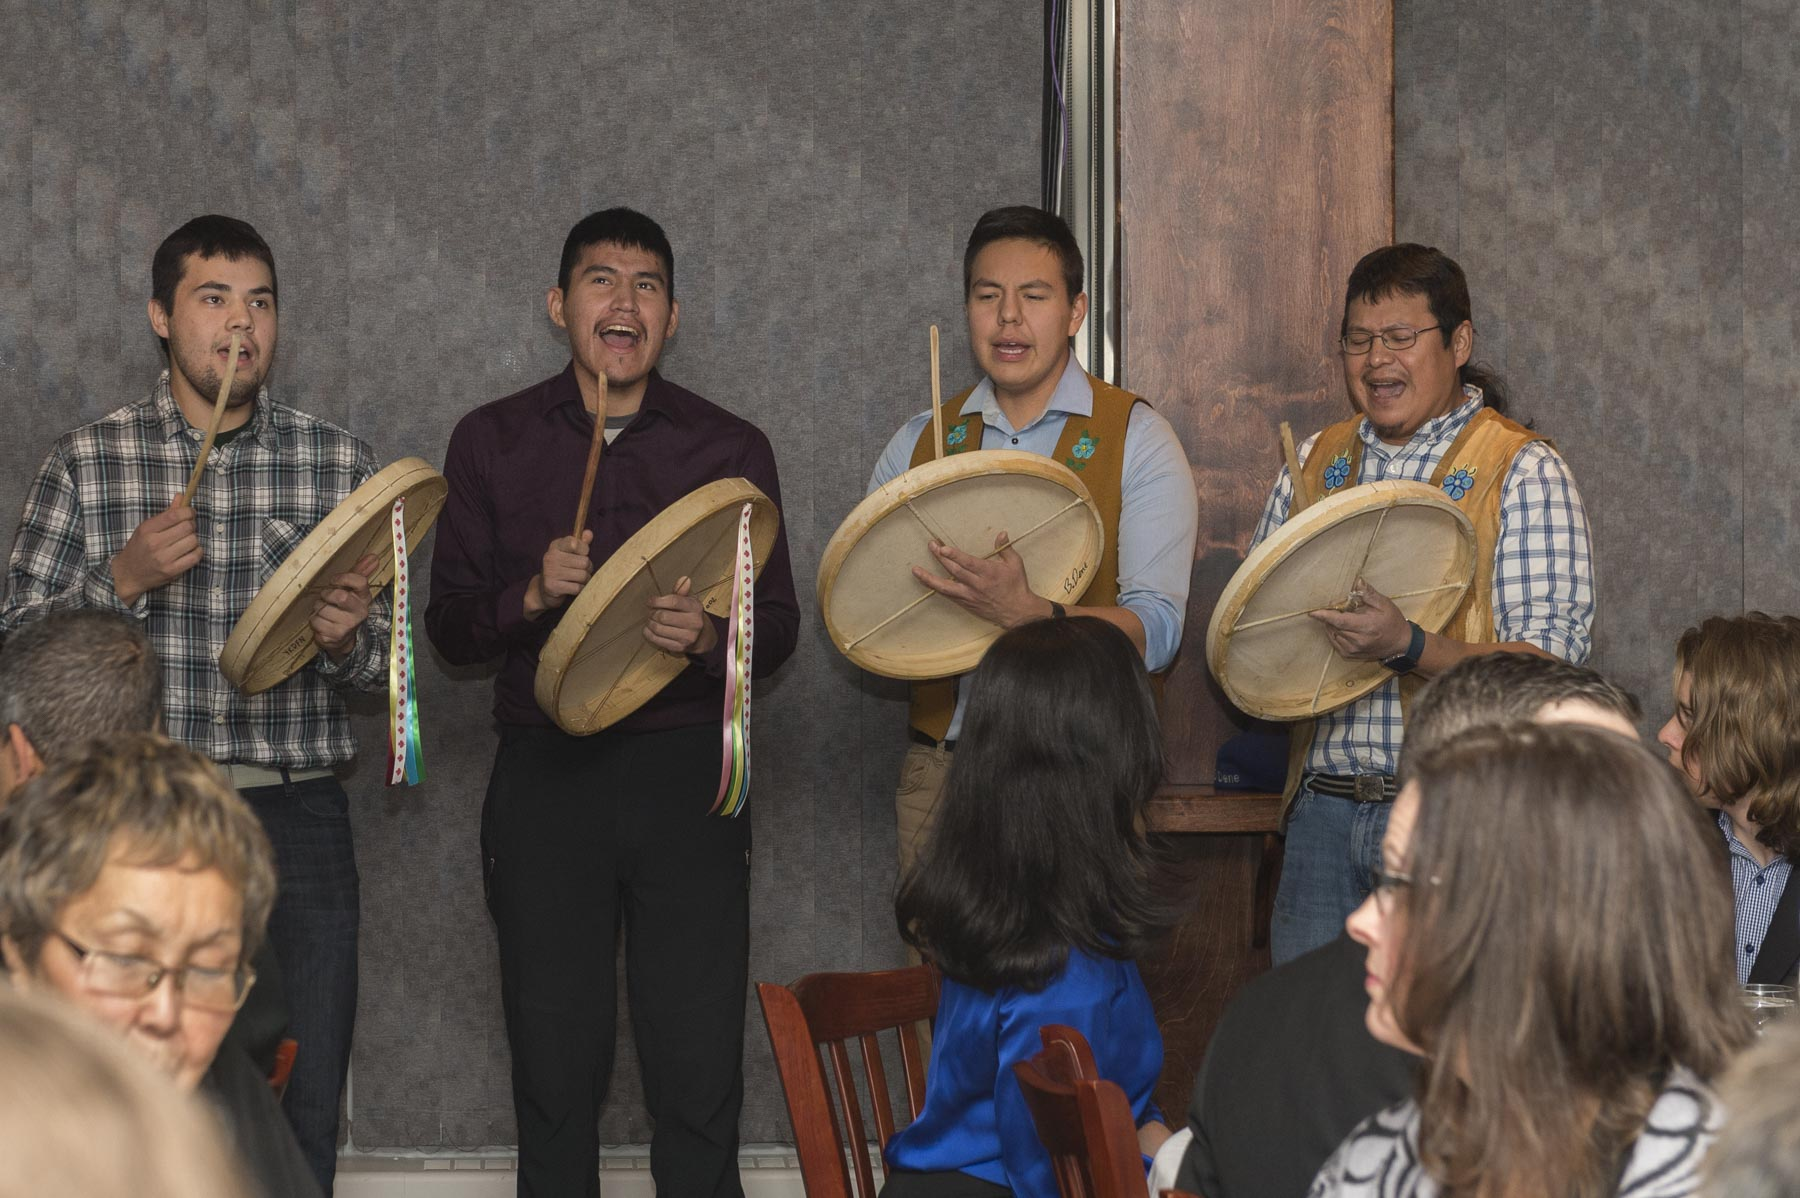 The Yellowknives Dene Drummers offered a prayer and performed a welcome song.